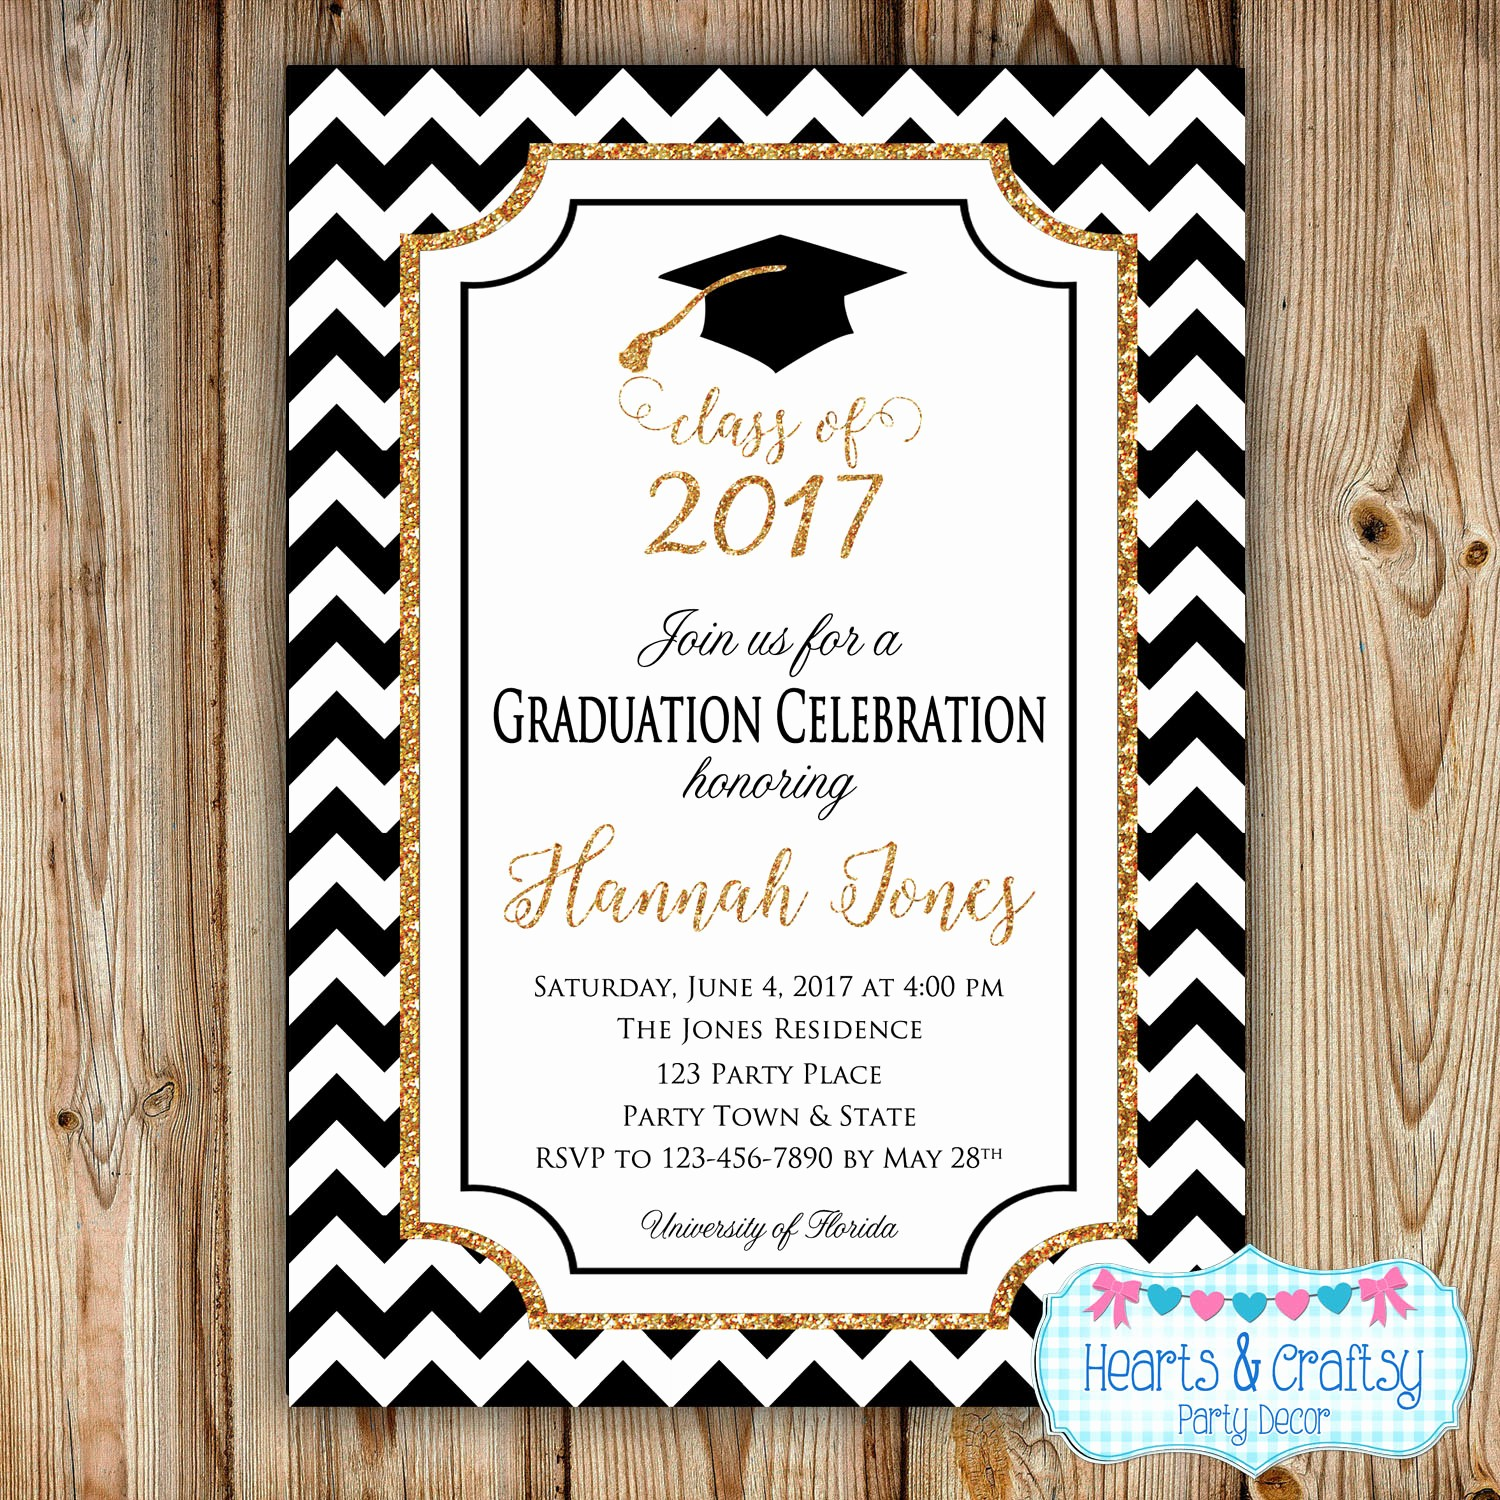 Free Graduation Party Invitation Template Awesome Graduation Party Invitation College Graduation Invitation